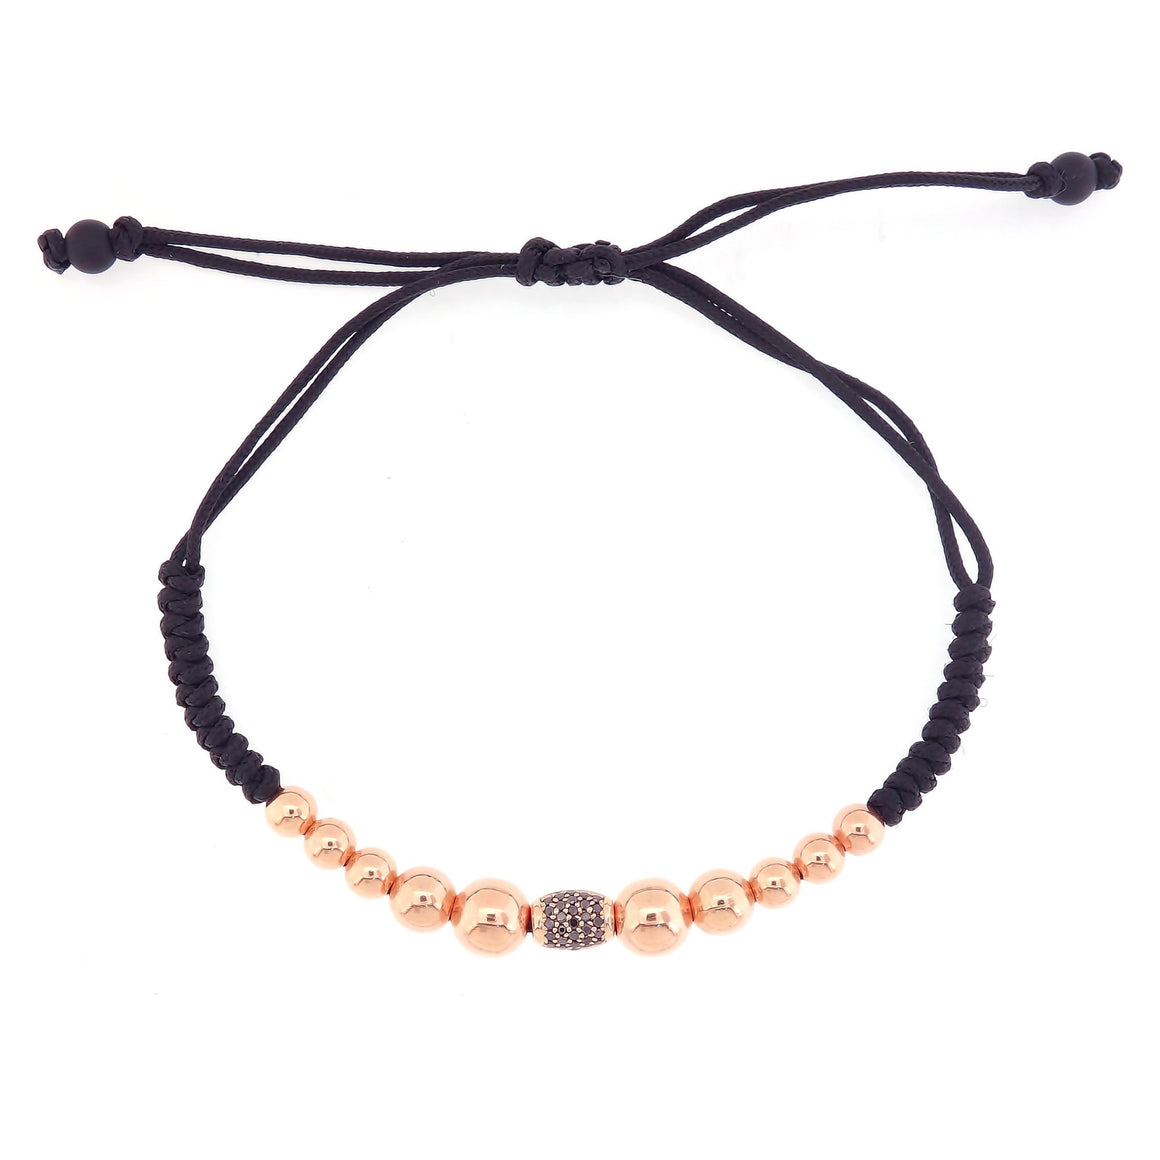 Gold Beads Bracelet with Black Pave Diamond Element in 18K Rose Gold